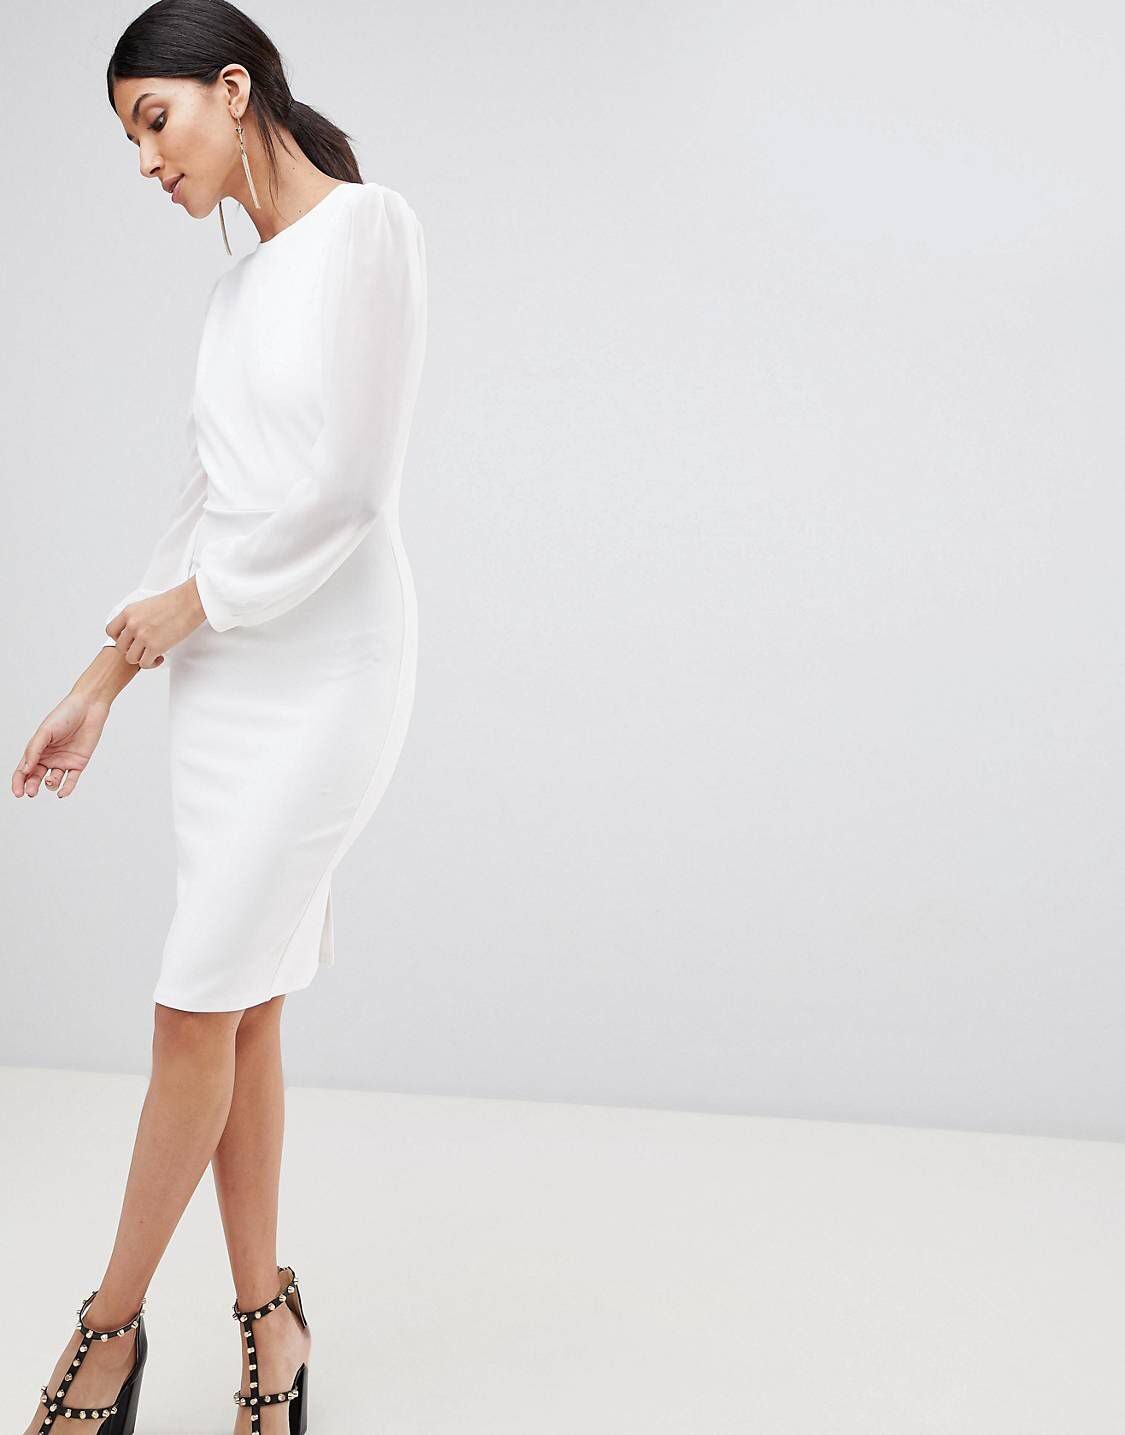 Open Back Bodycon Dress With Split Sleeve Detail - White John Zack Tall Sale Cheap Clearance With Credit Card sZQF6hP